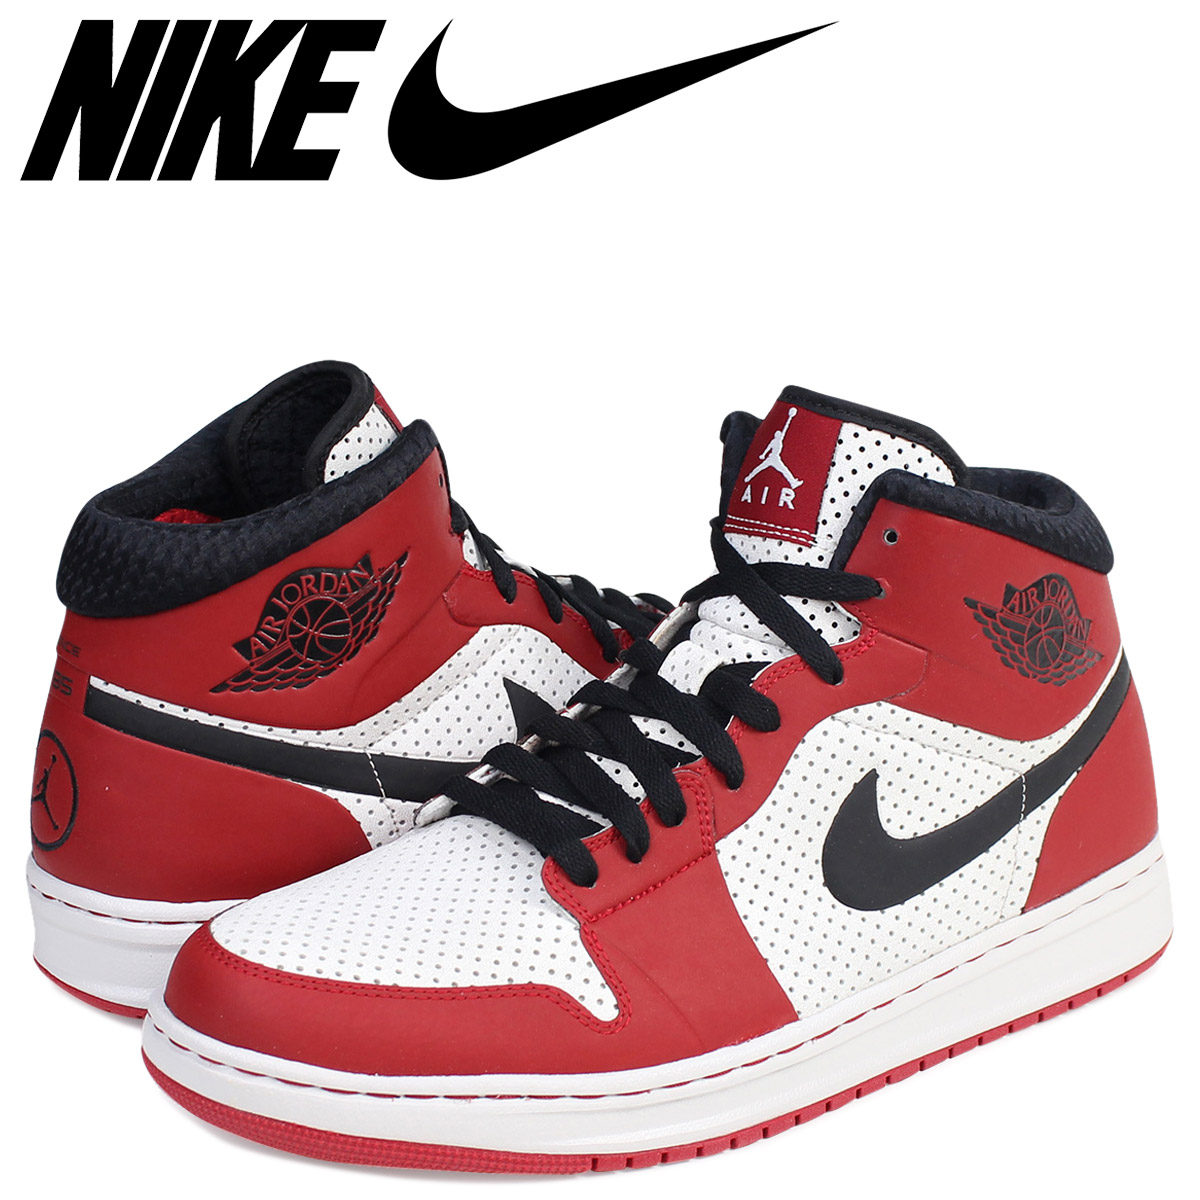 Sugar Online Shop Sold Out Nike Nike Air Jordan 1 Alpha Sneakers